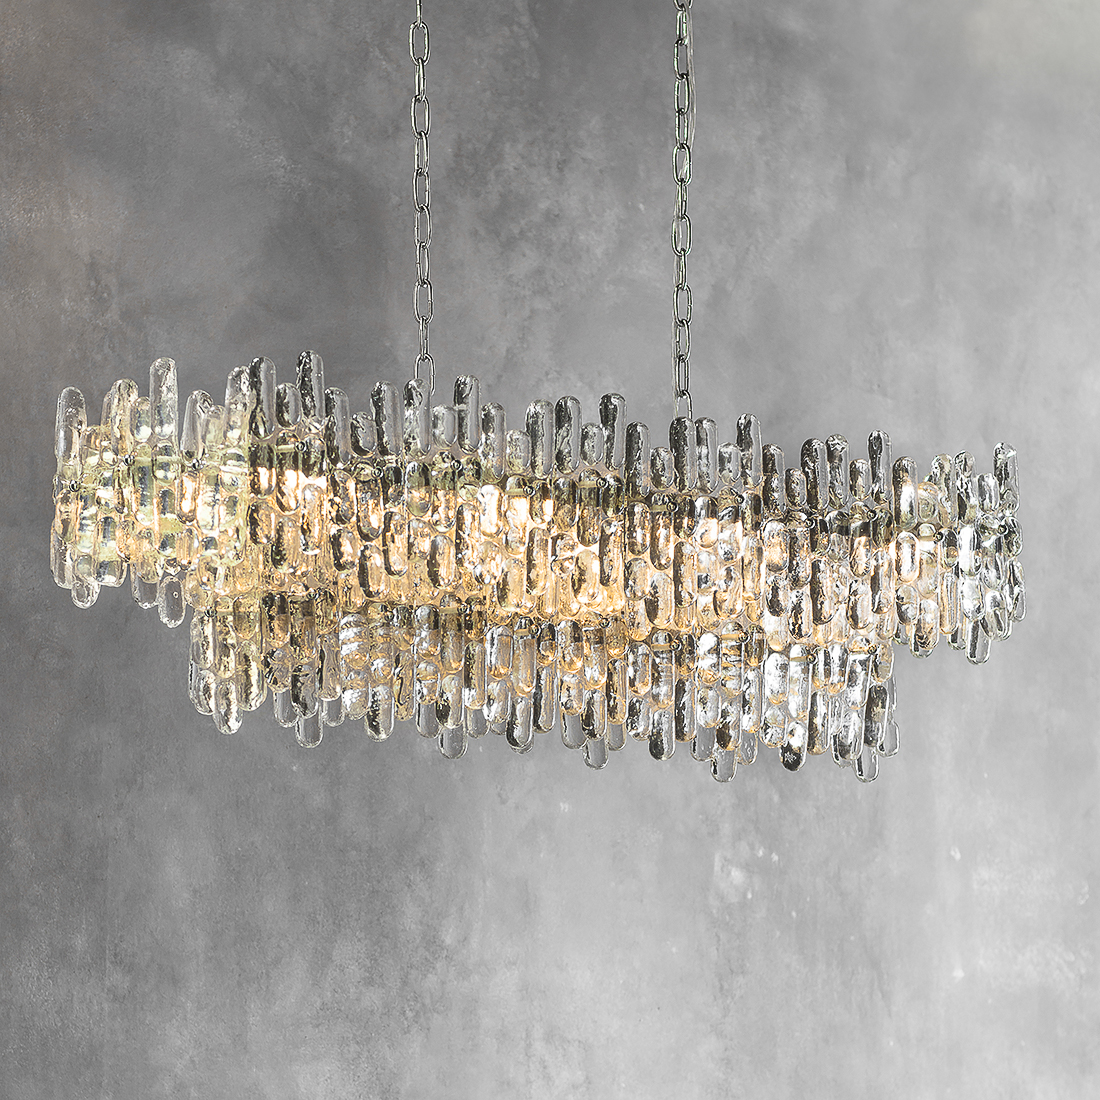 Chandeliers | Add in the Extra Style and Grace to Your Home!